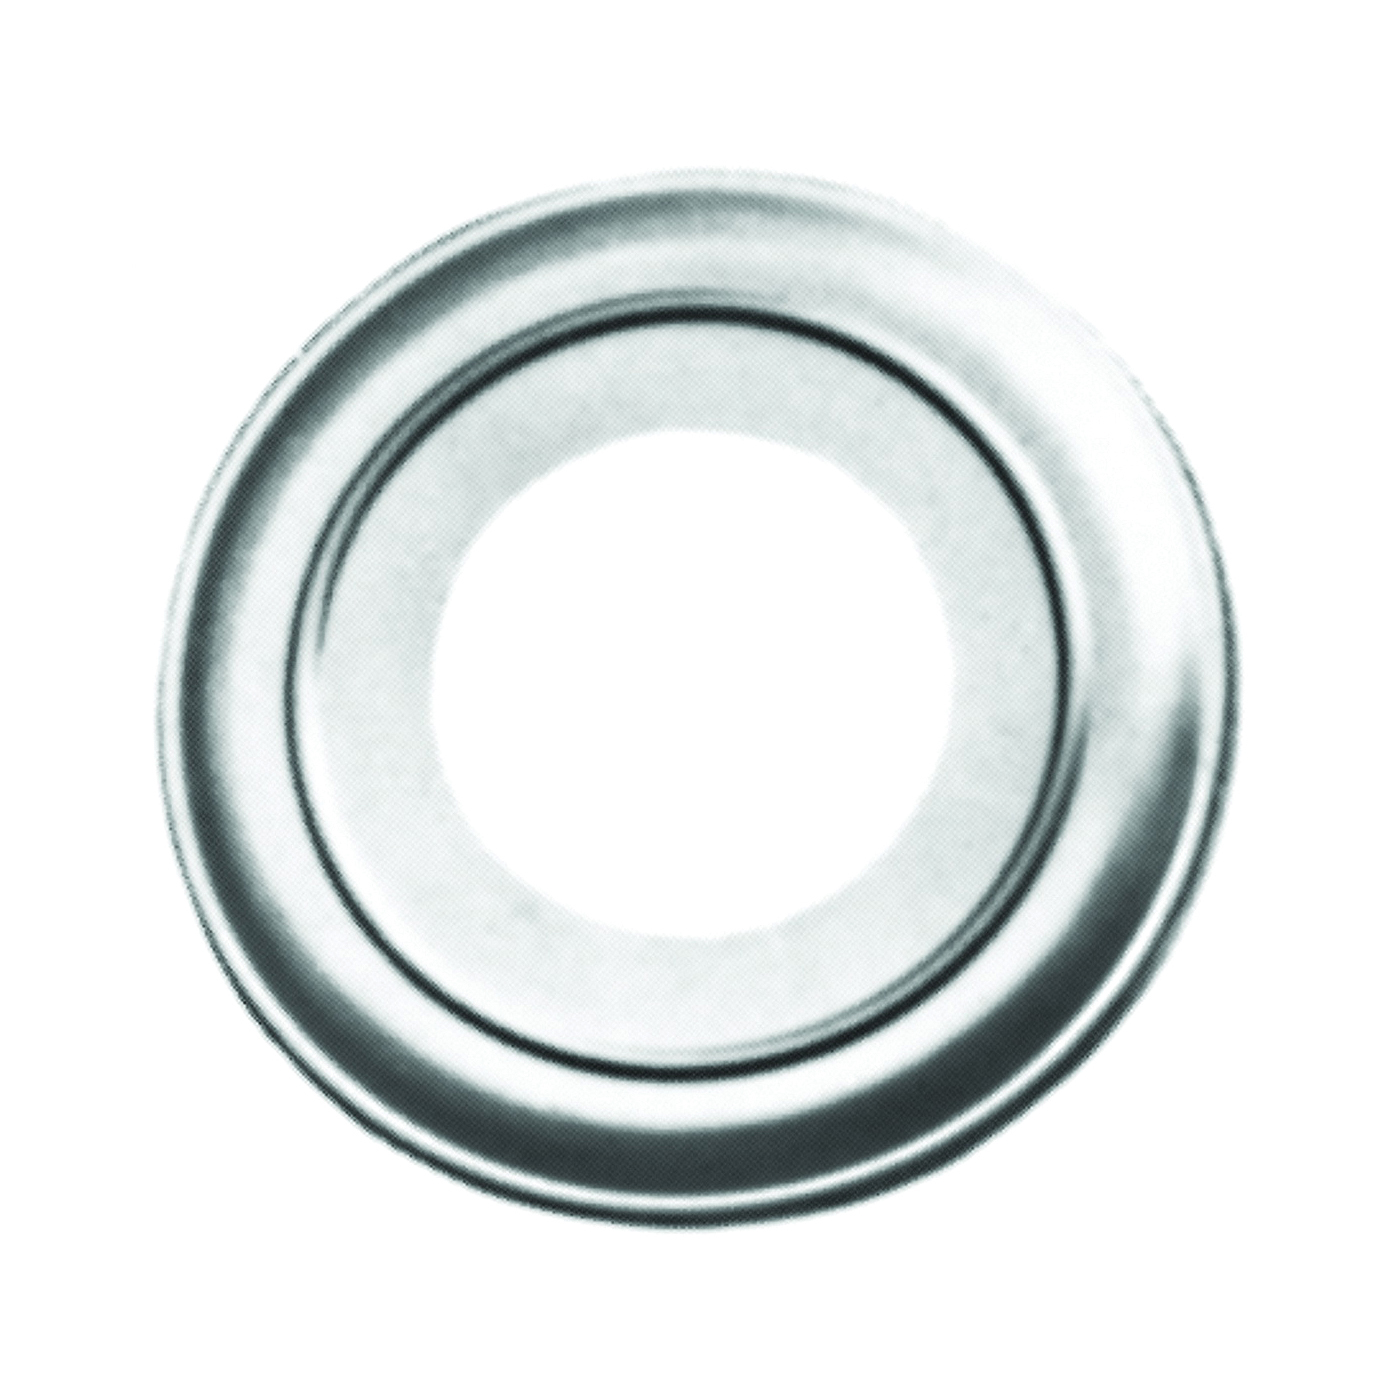 Picture of AmeriVent 6EVC Vent Collar, 6 in Vent Hole, Galvanized Steel